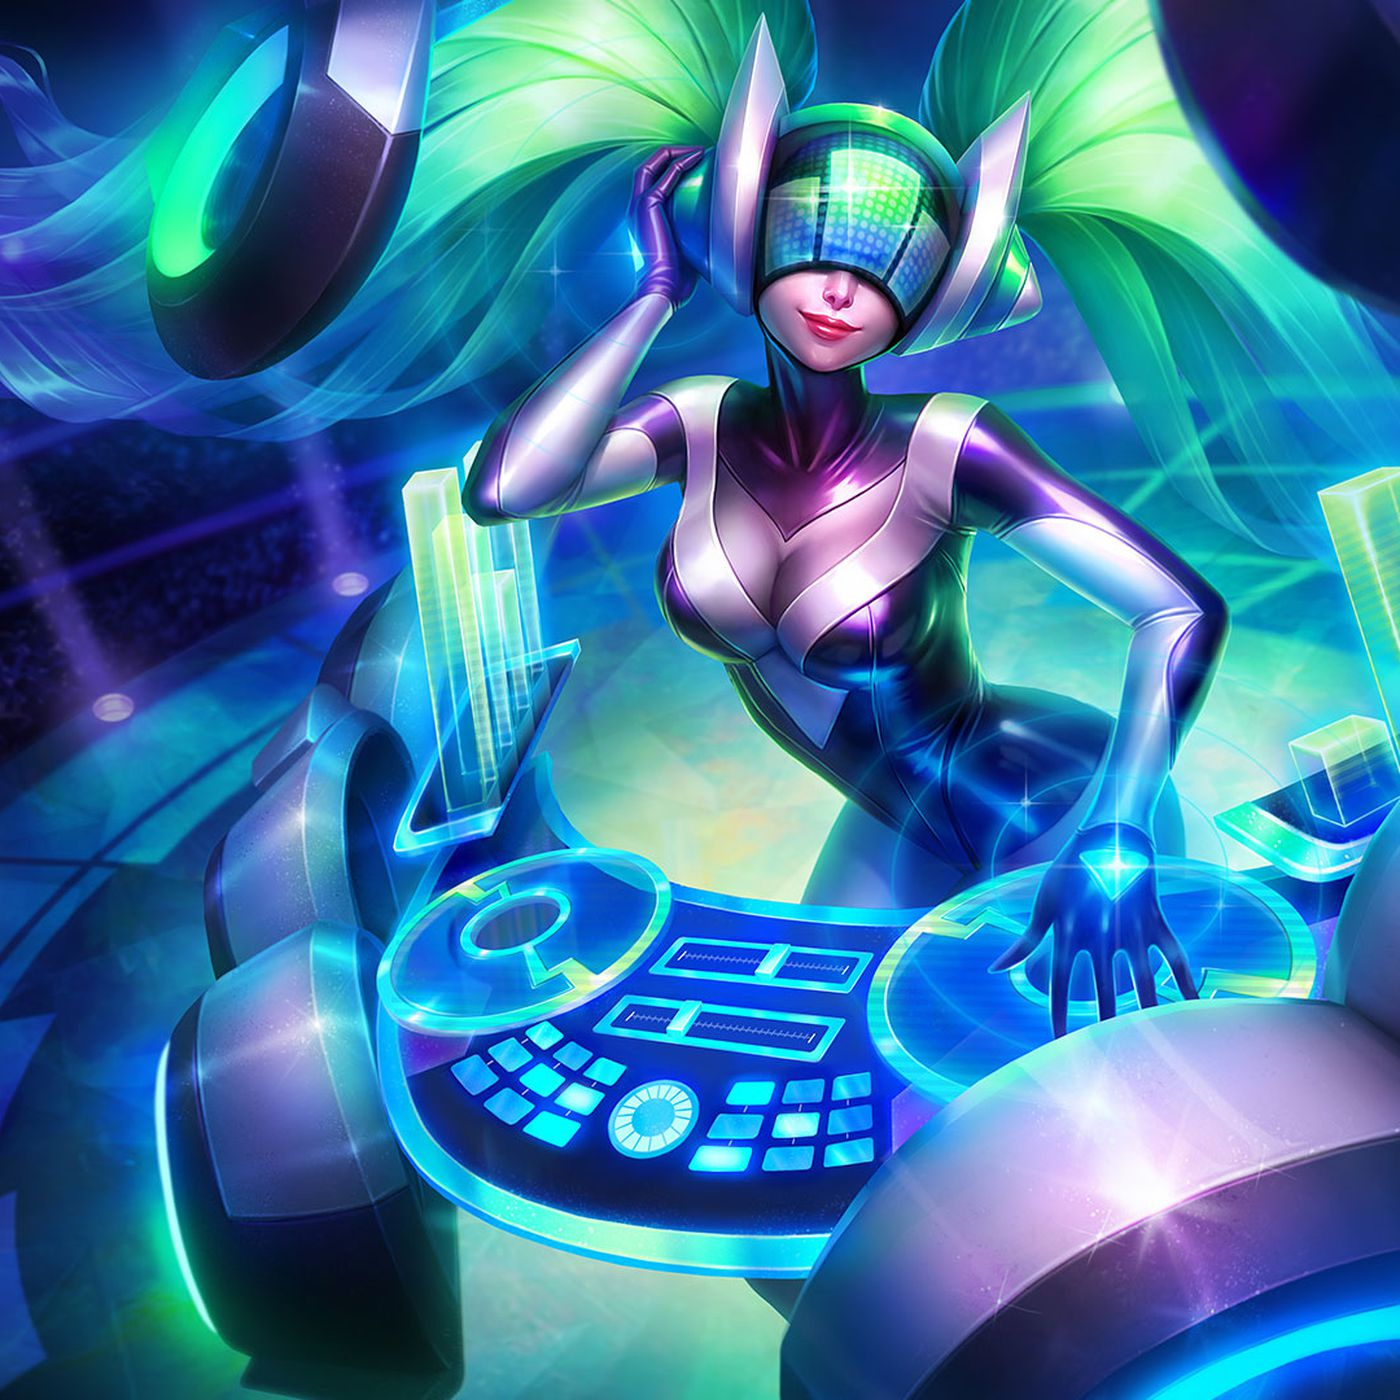 Christmas Skins League 2021 How To Get The Most Out Of Gambling On League Of Legends Mystery Skins Polygon